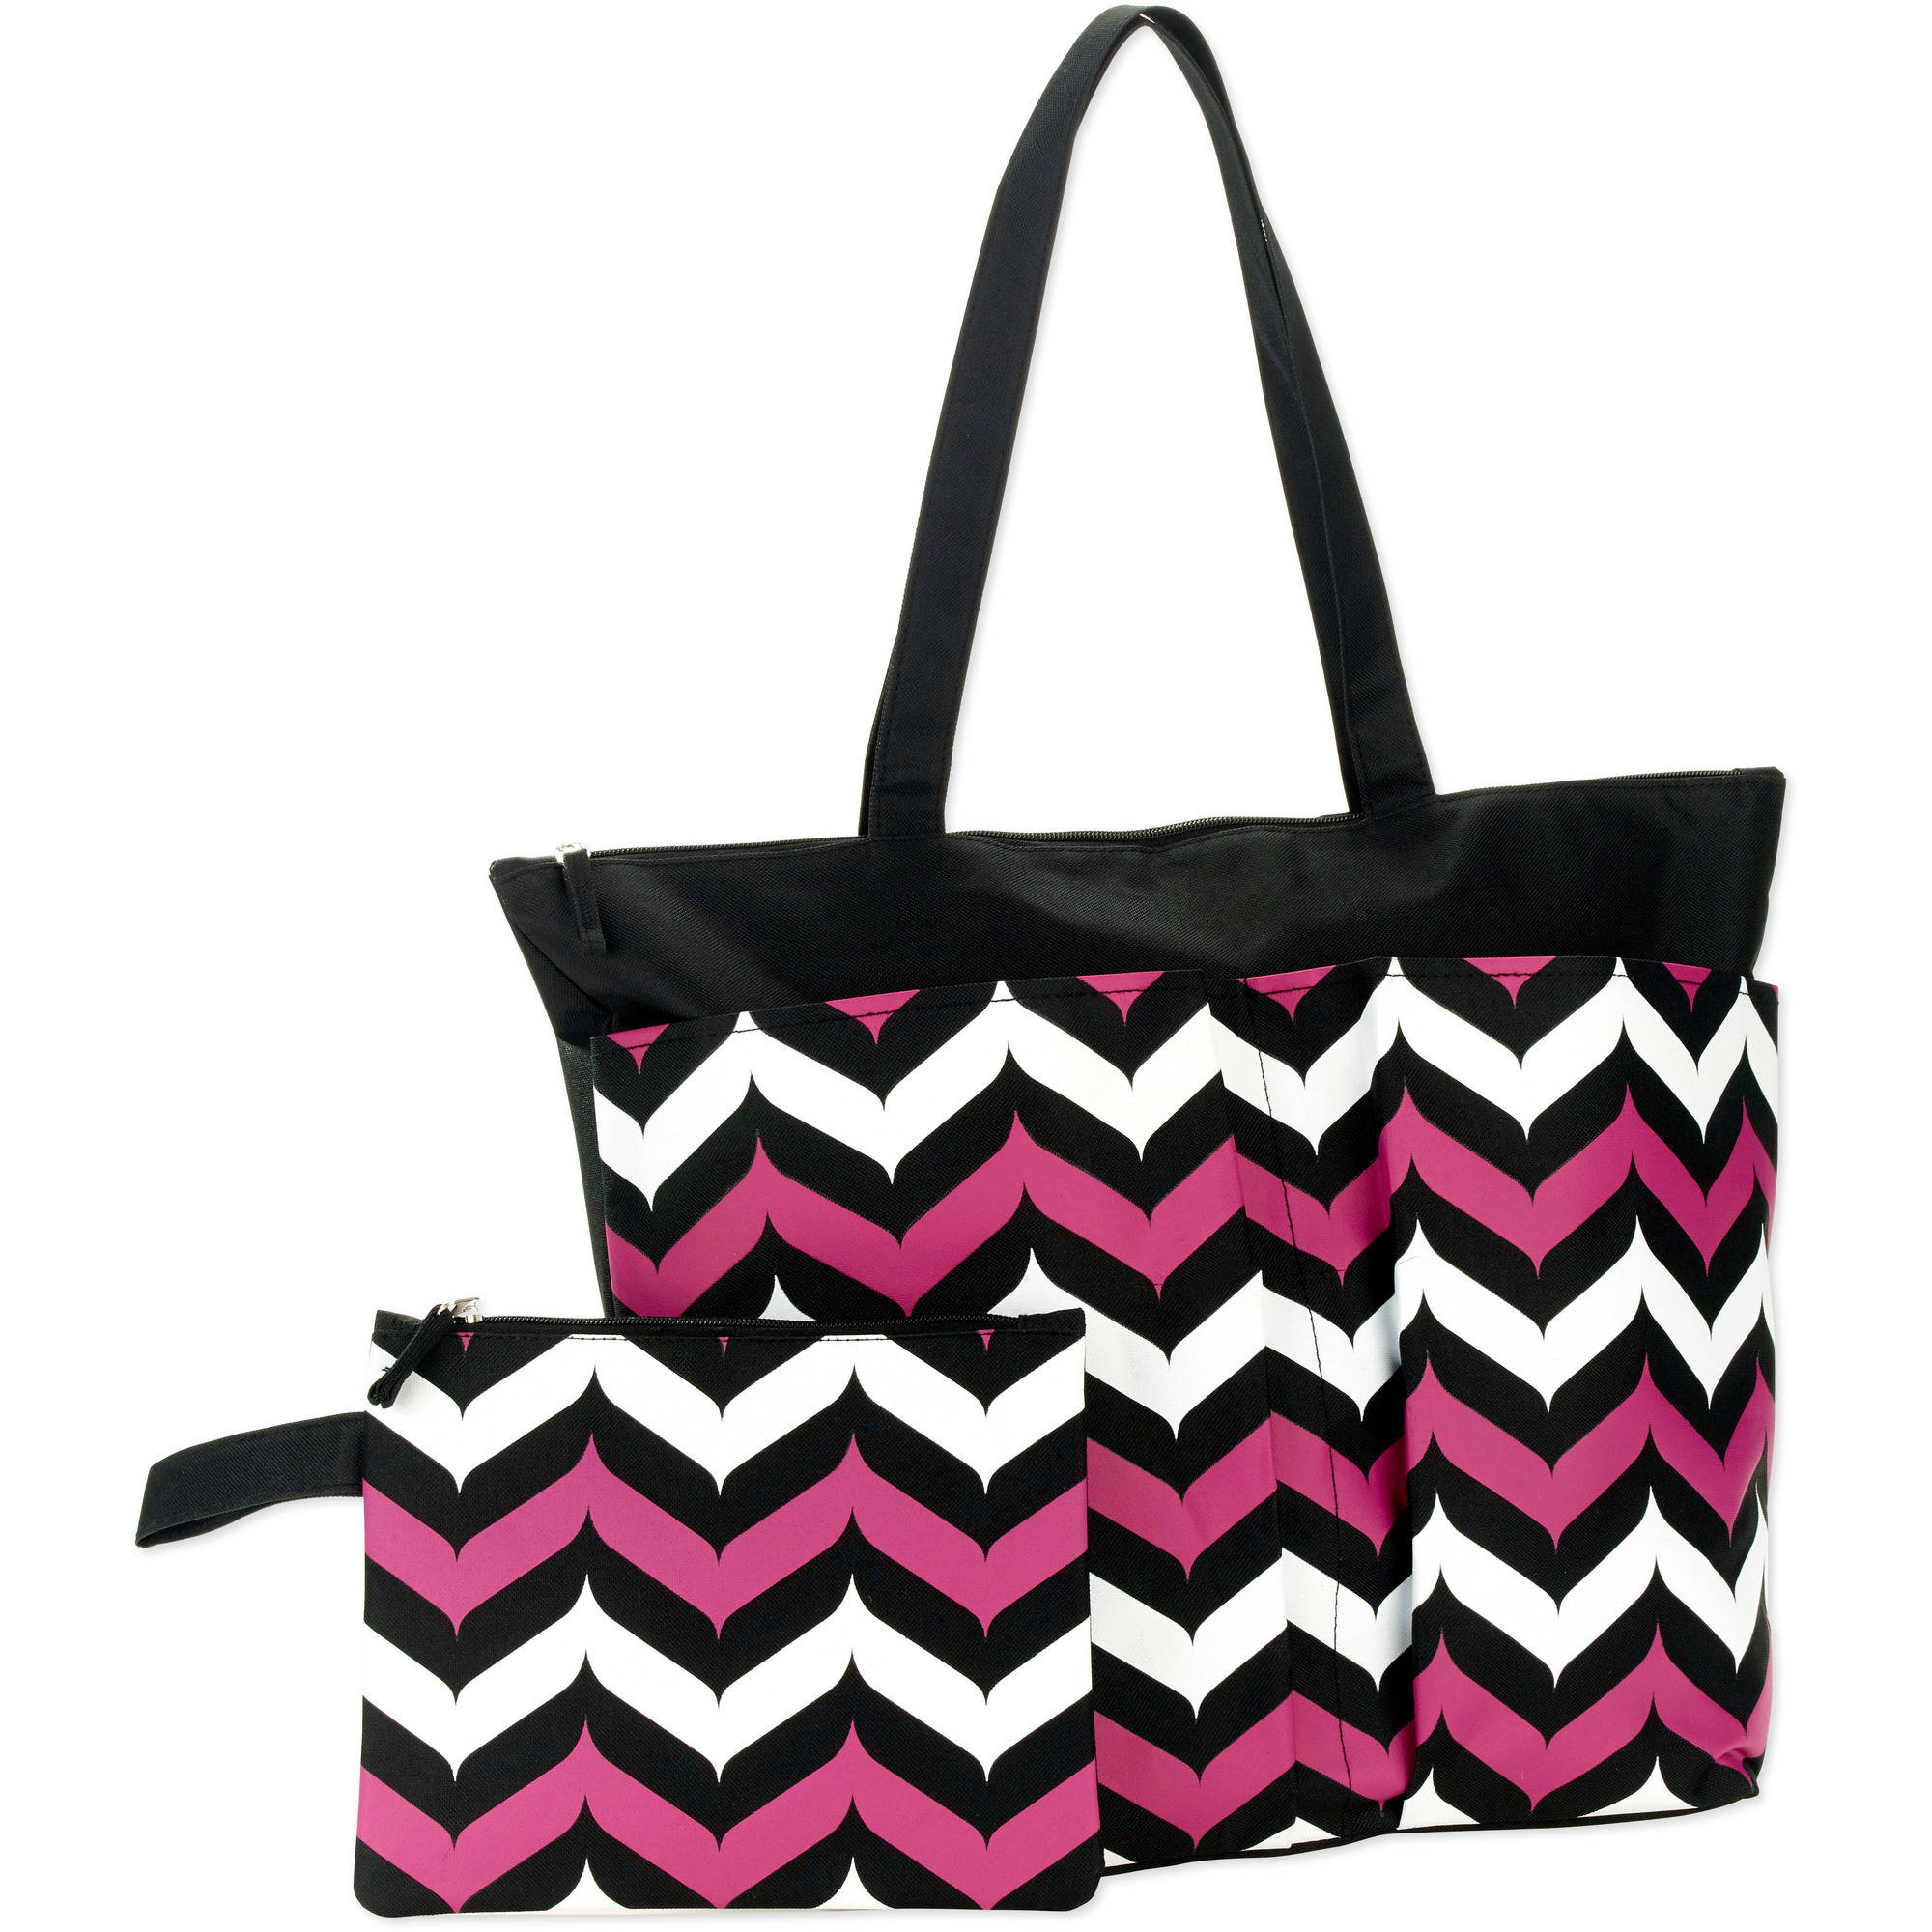 Women's Double Pocket Beach Tote and Bikini Bag